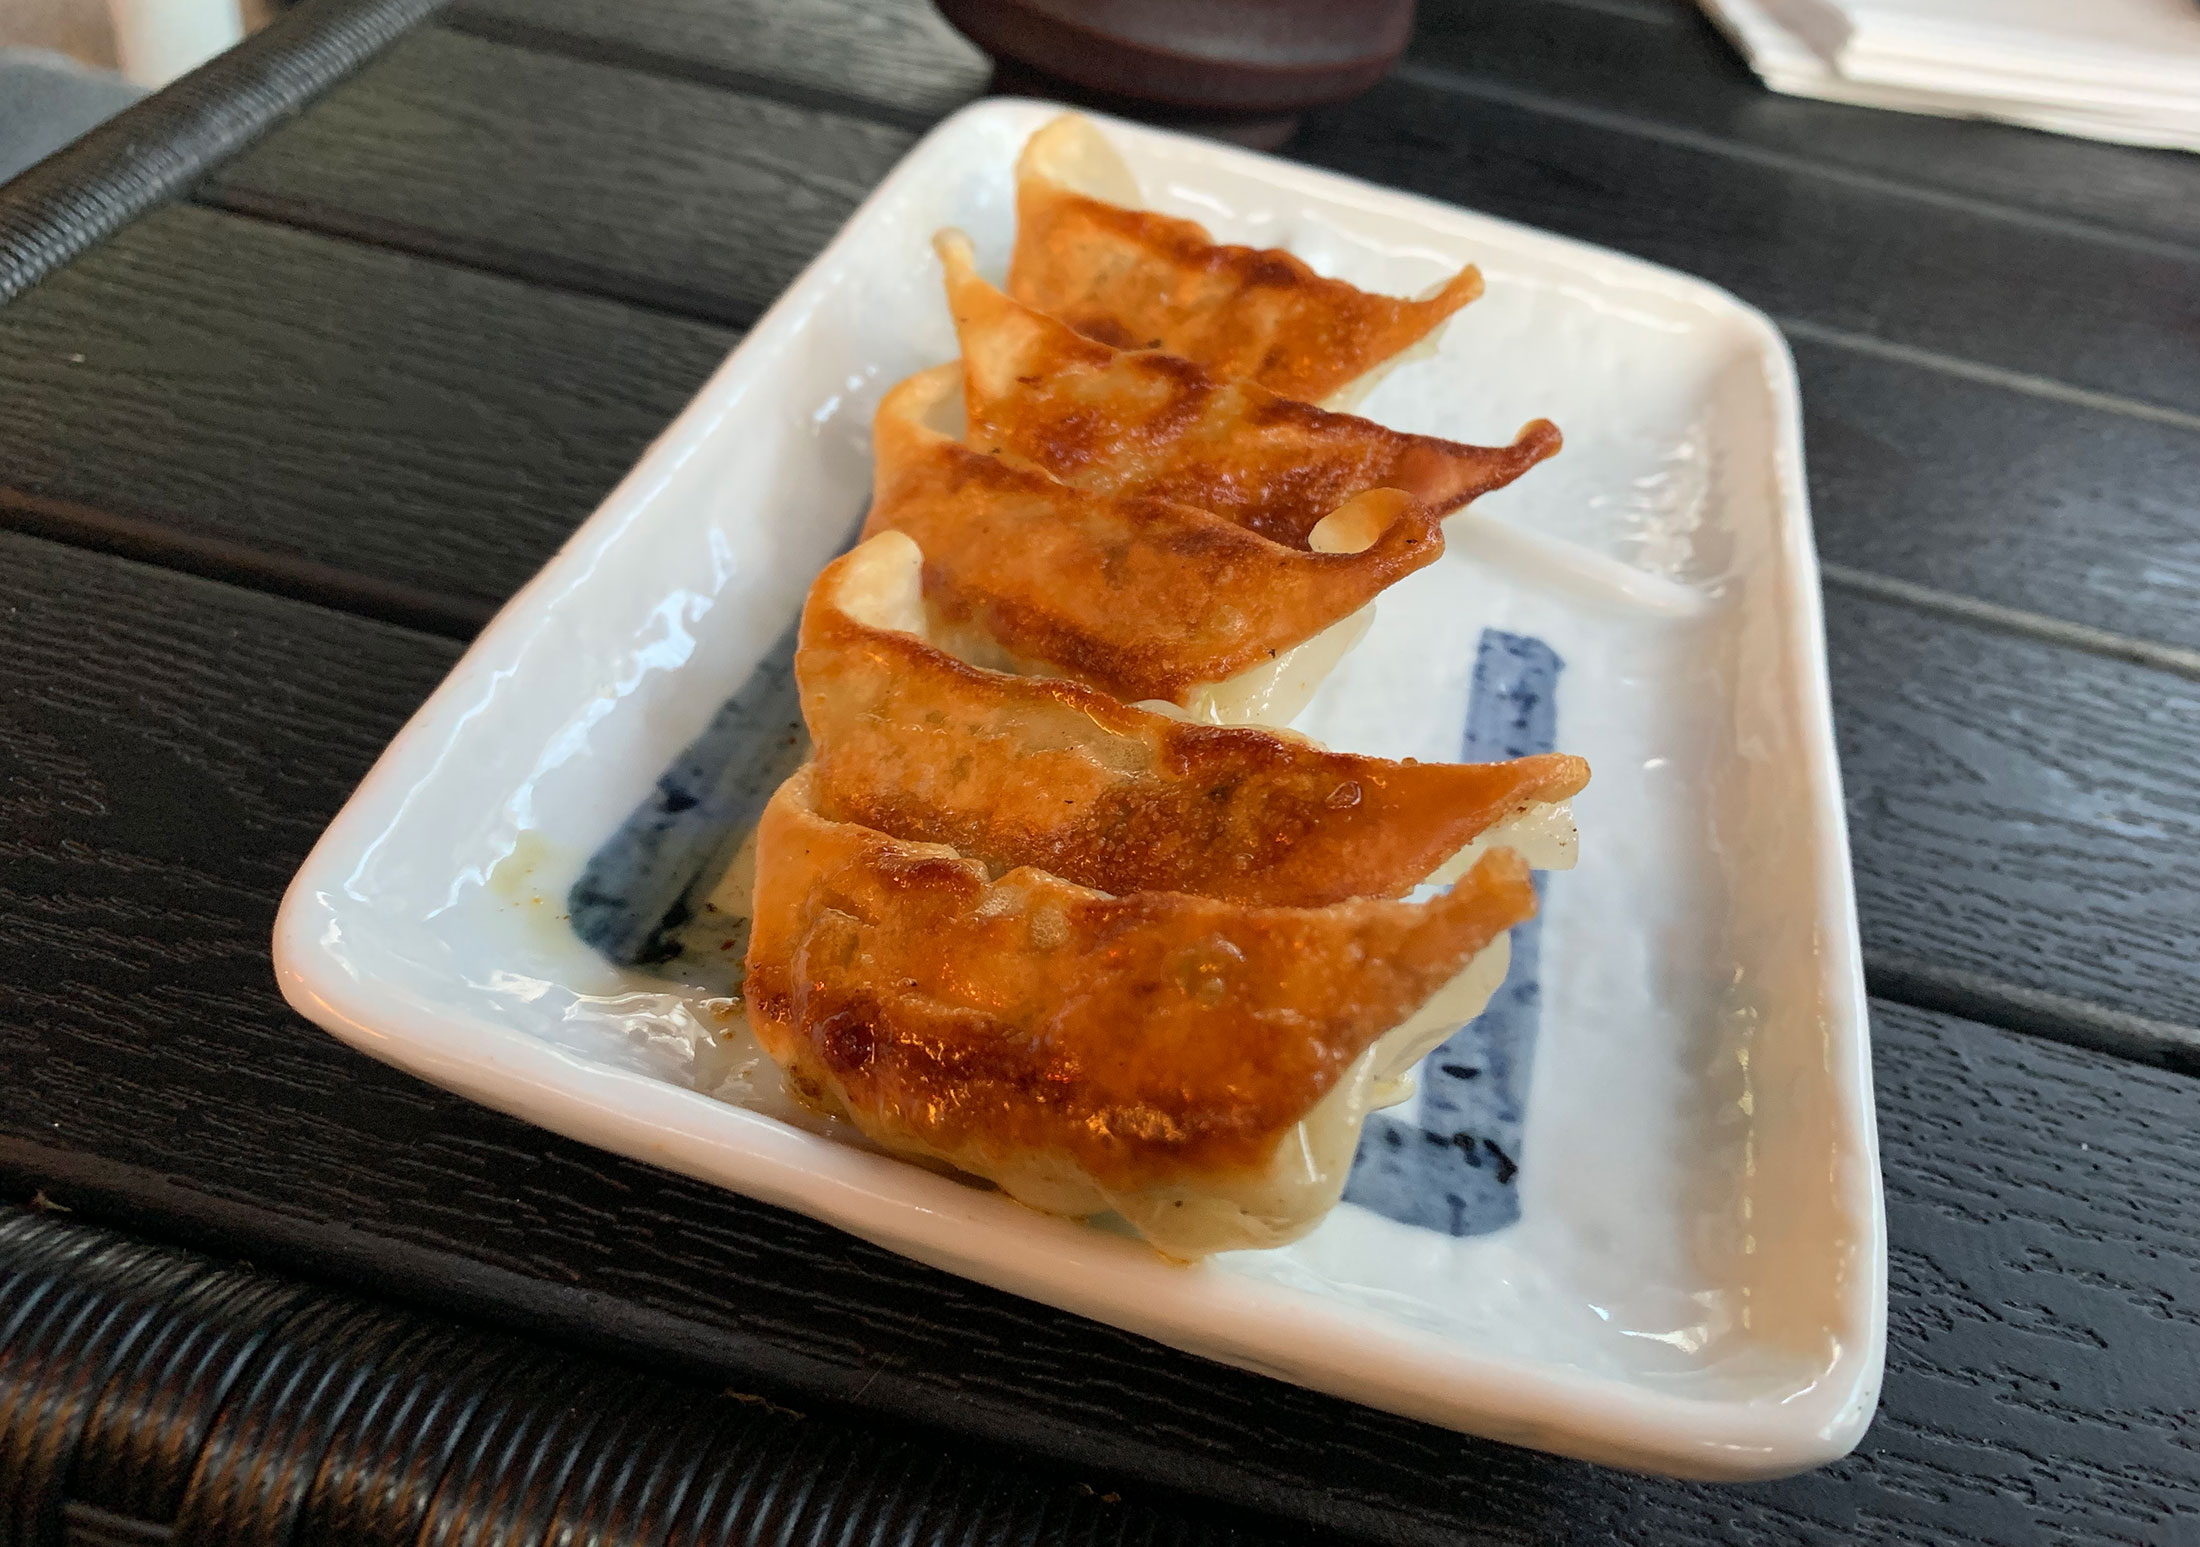 Side of gyoza - Potstickers…not sure what was in them, but it was good.